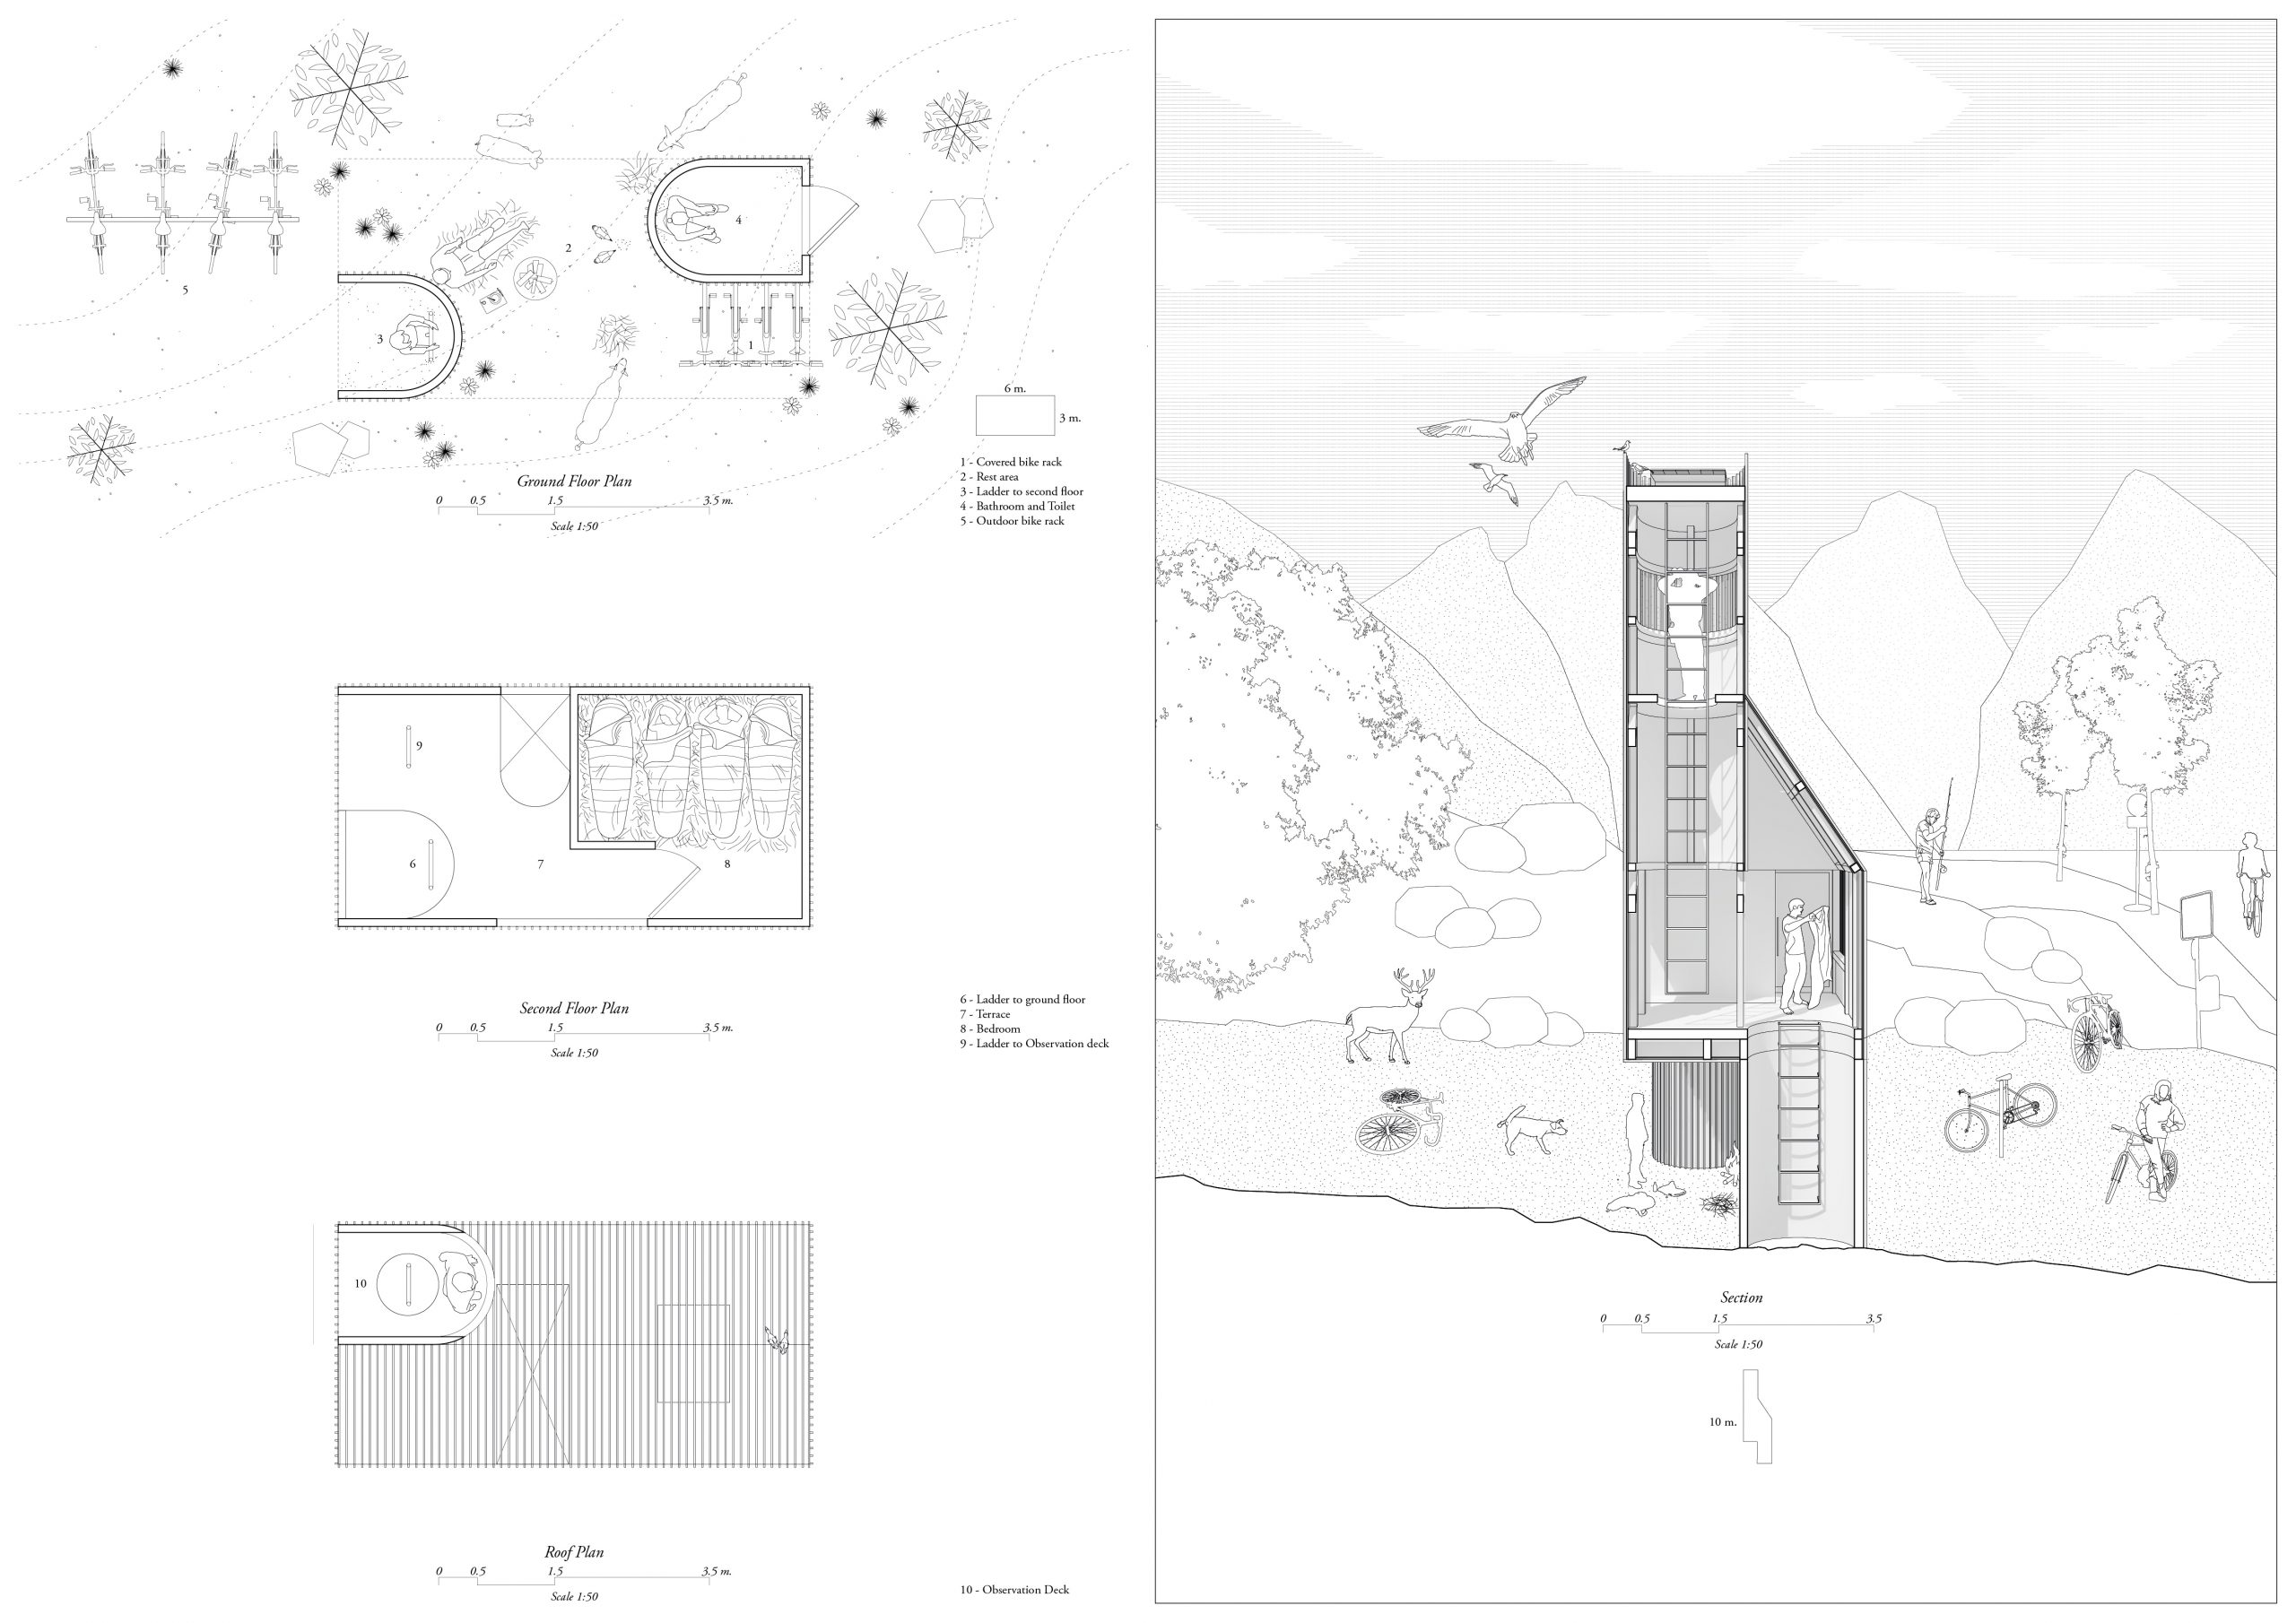 verasustudio work, beacon of refuge, 2019, Floorplan and Section drawing for a cabin stop for EuroVelo 6